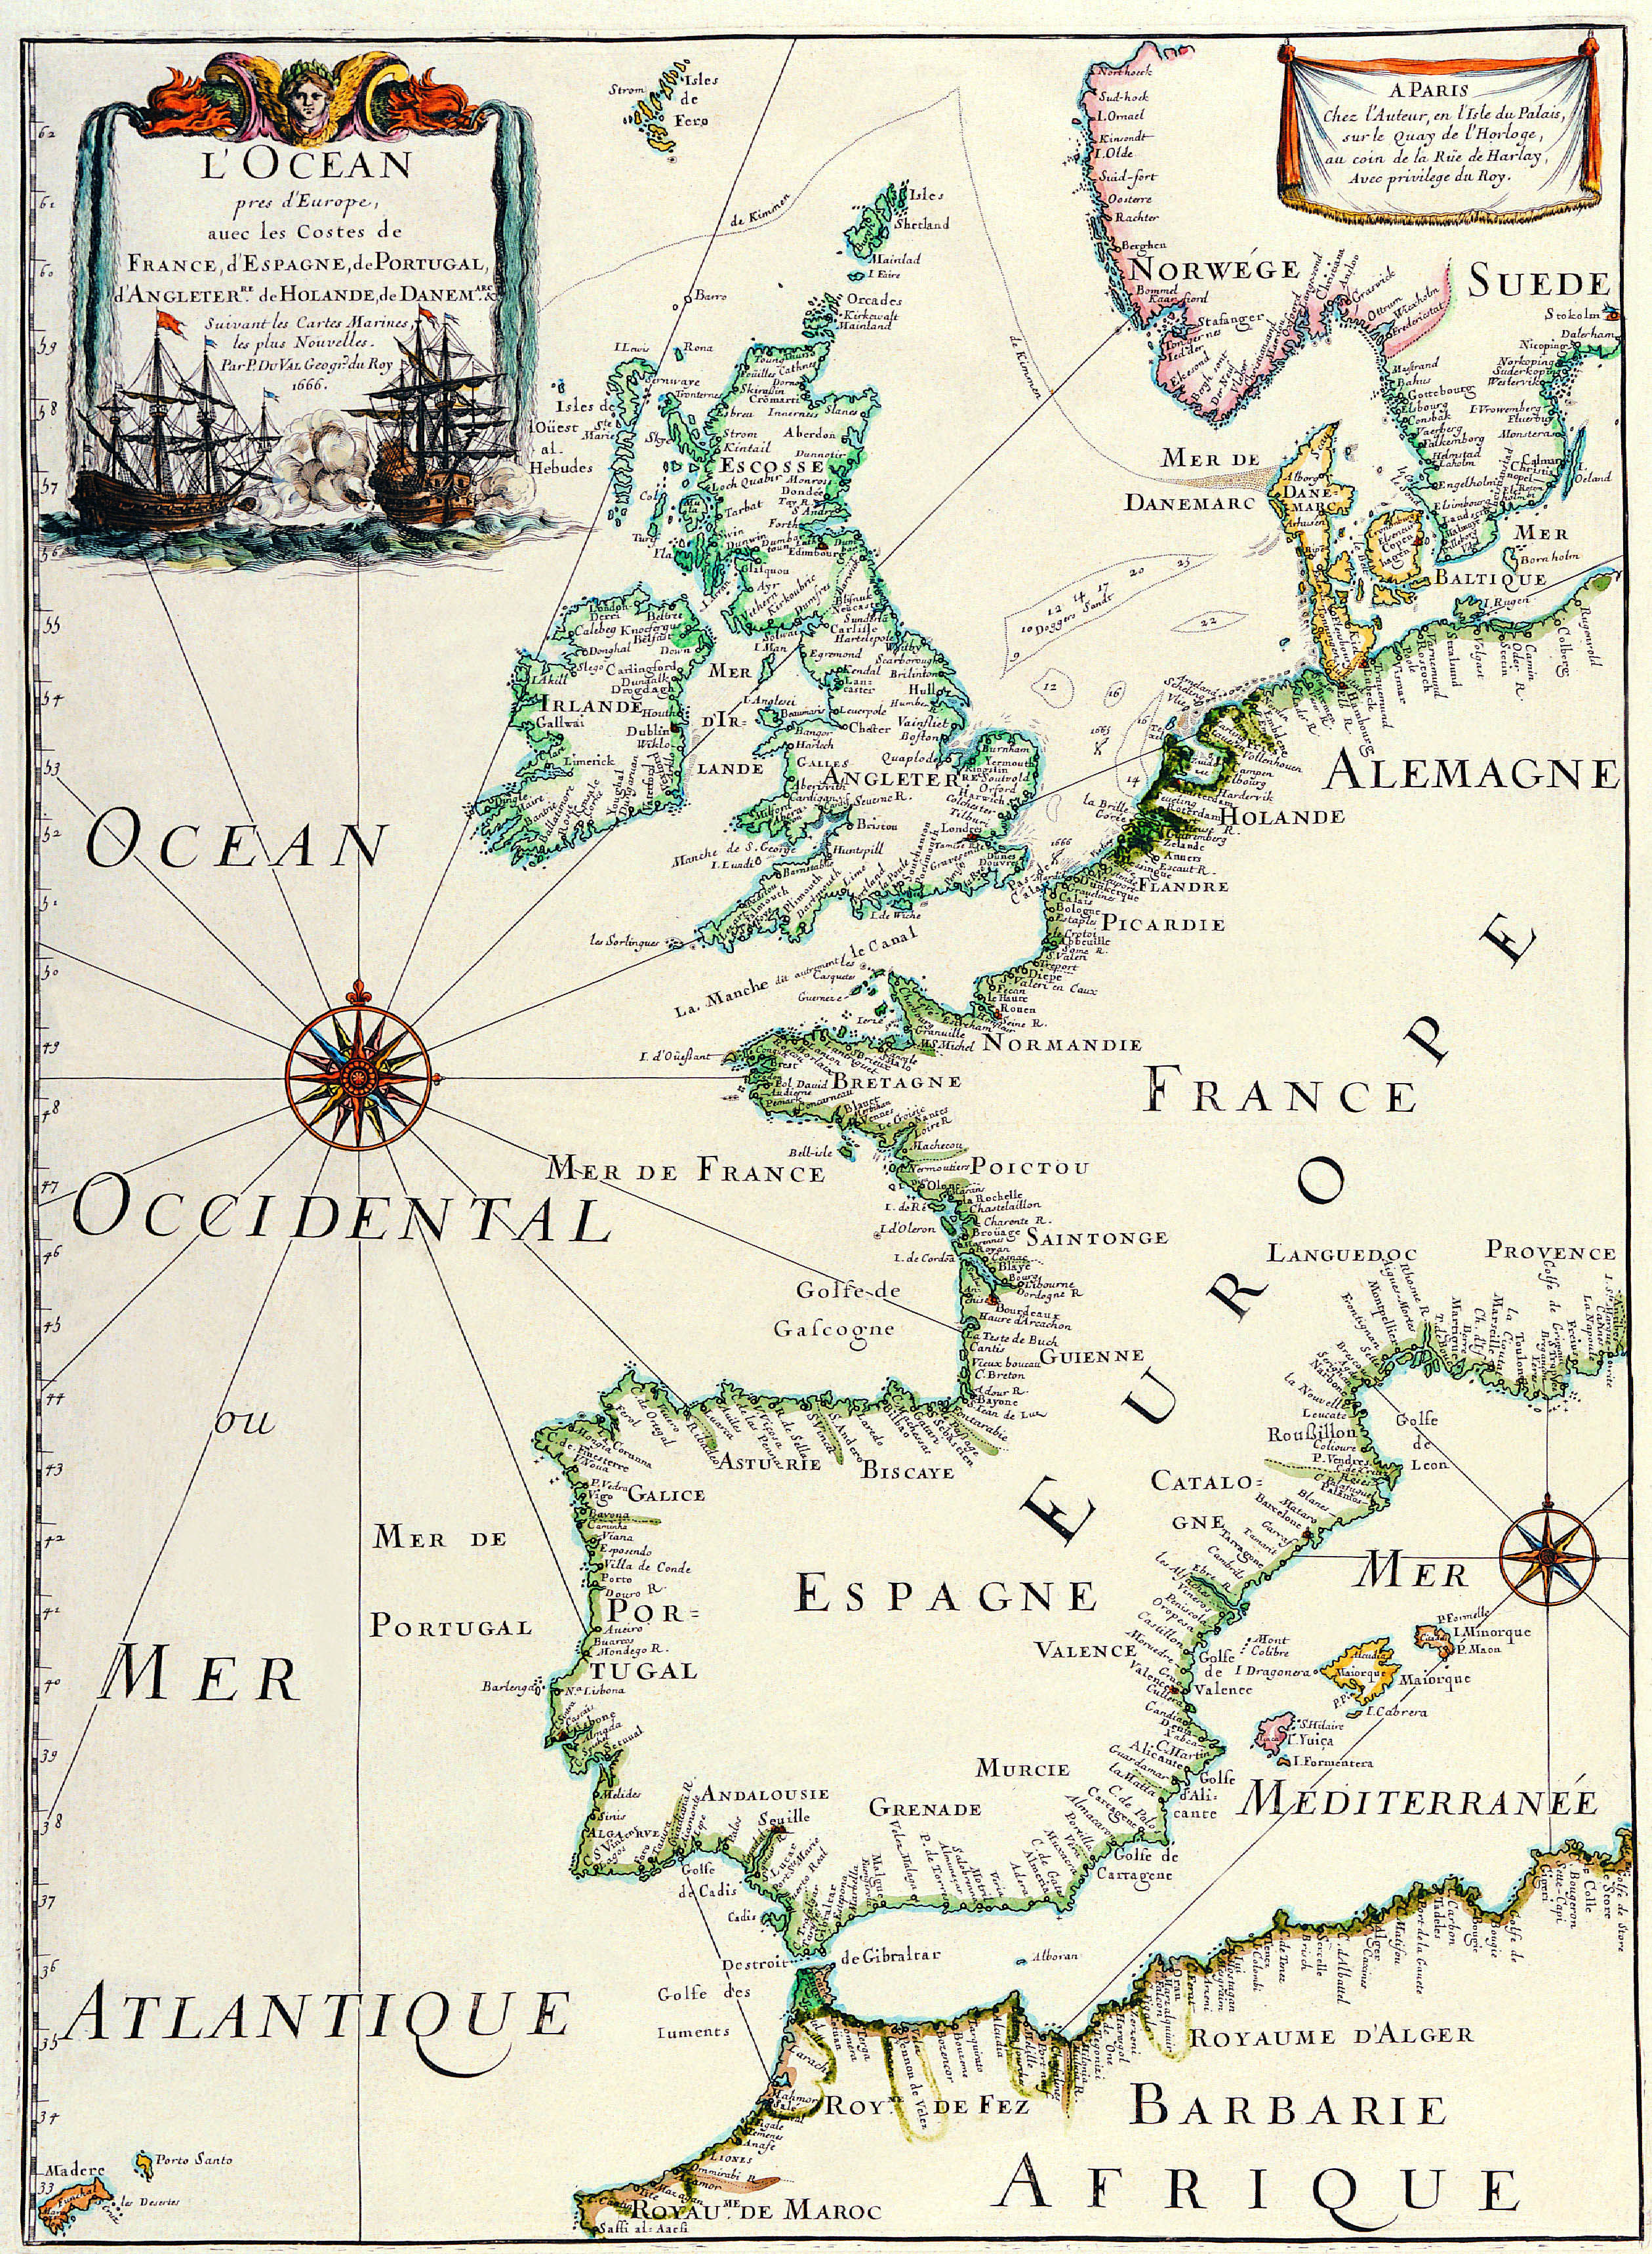 Old maps idea for an explorer or similar character print off maps antique maps of the world map of europe matthaus merian c 1641 by r muirhead art gumiabroncs Gallery